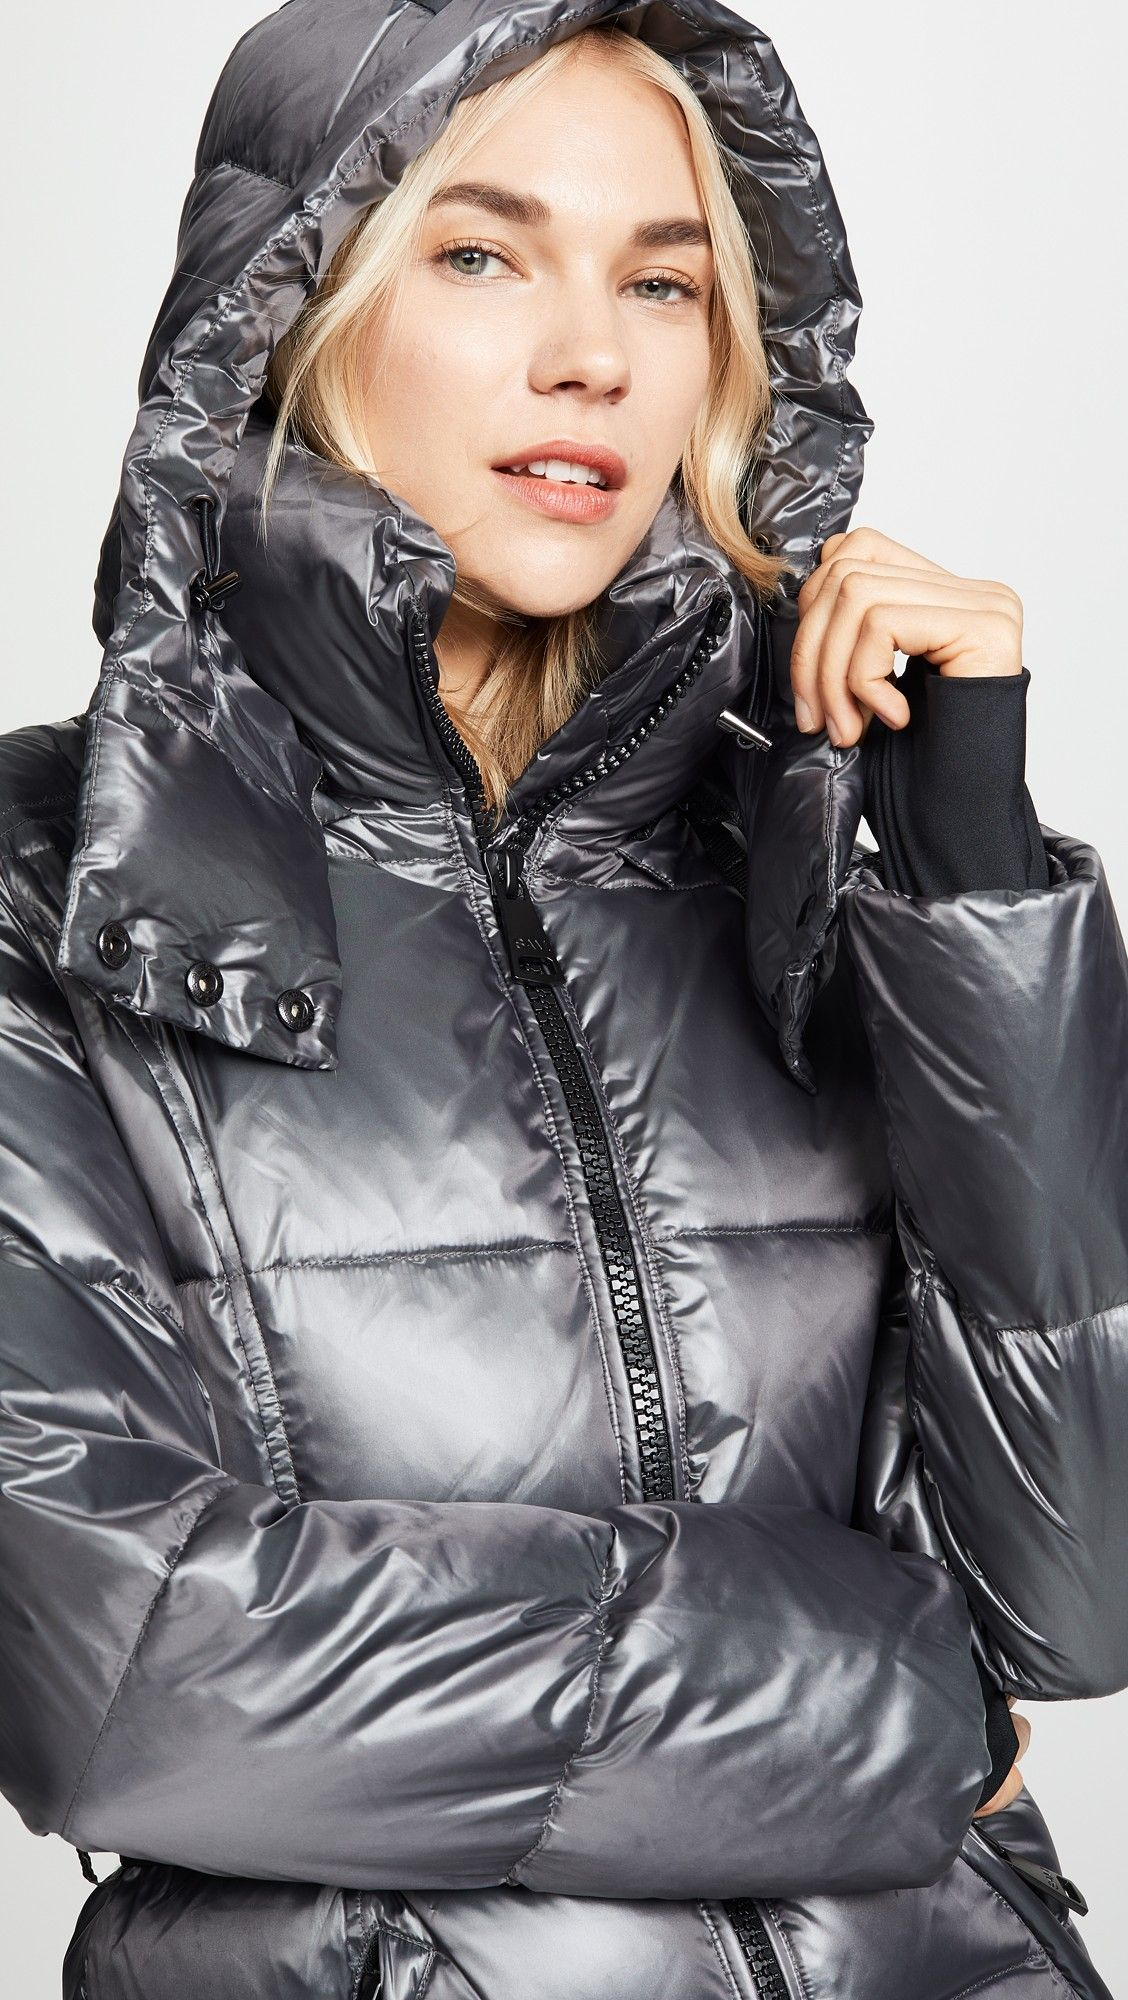 Sam Soho Long Down Jacket Shopbop The Style Event Up To 25 Off On Must Have Pieces From Top Designers Down Jacket Jackets Puffer Jacket Women [ 2000 x 1128 Pixel ]